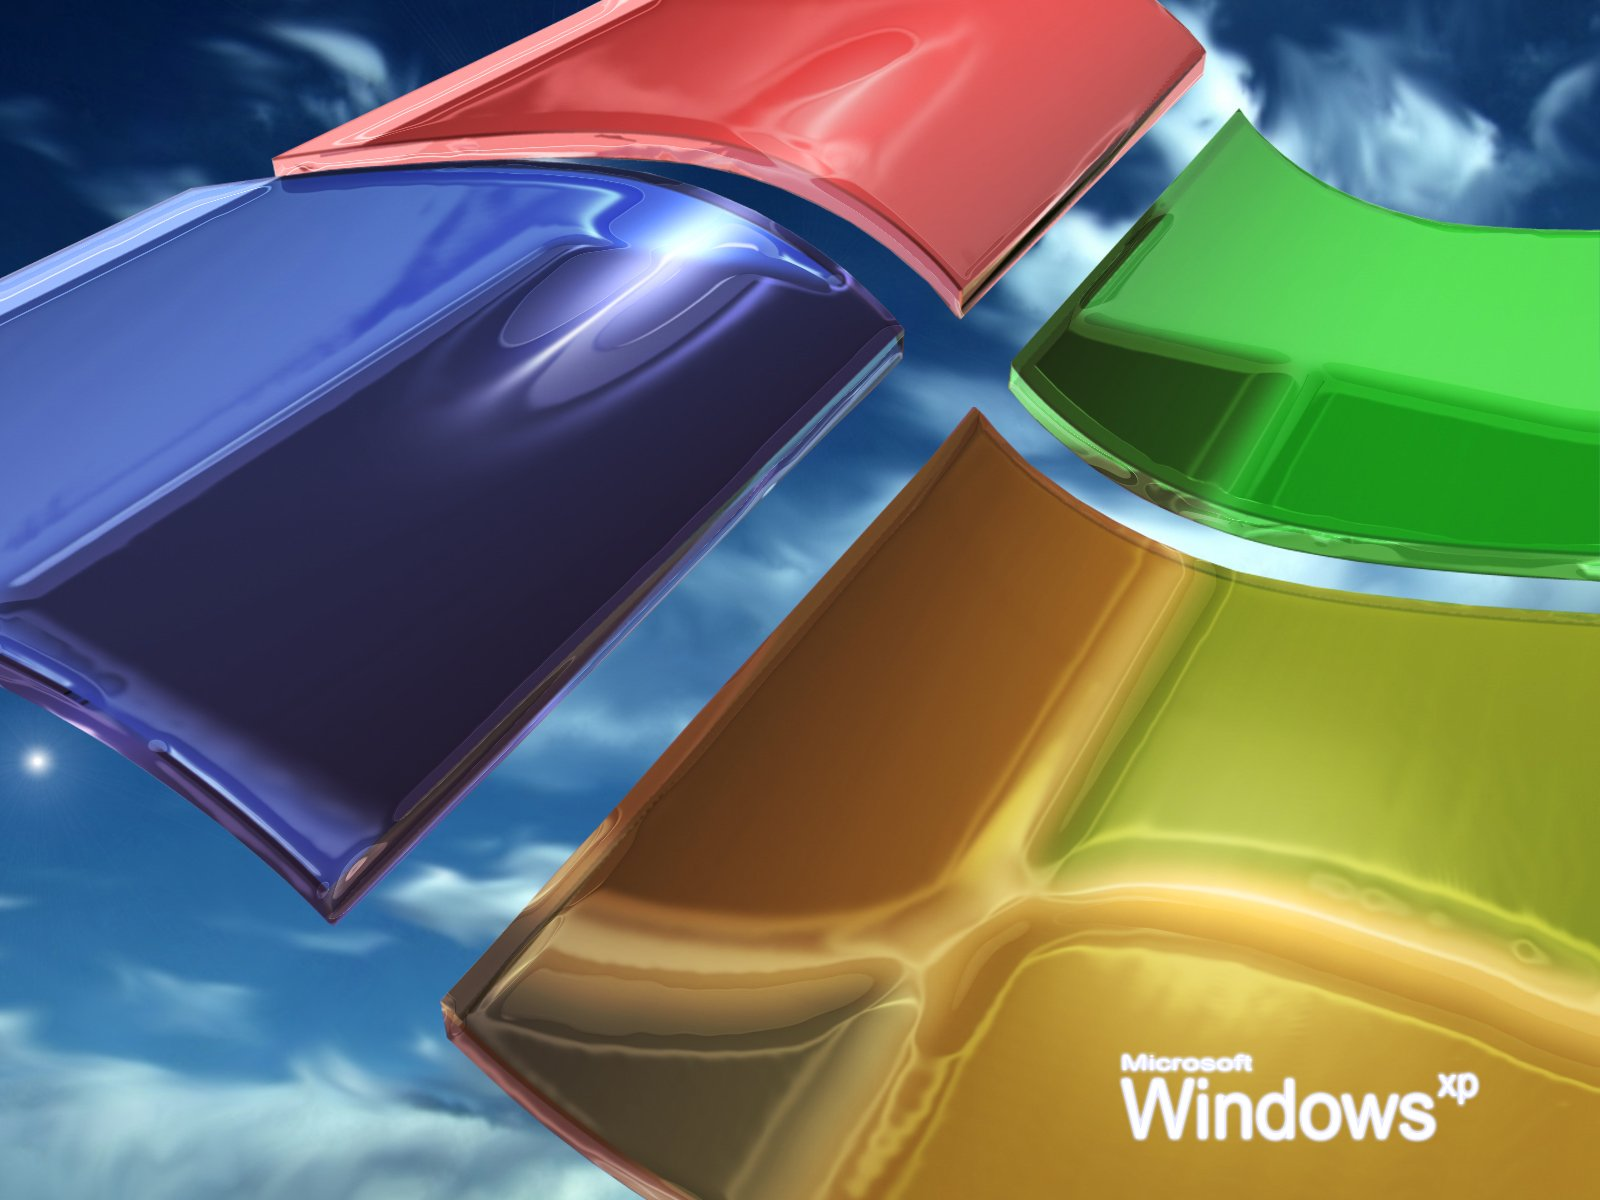 Fondos gratis de windows vista y windows xp windows 3 ver